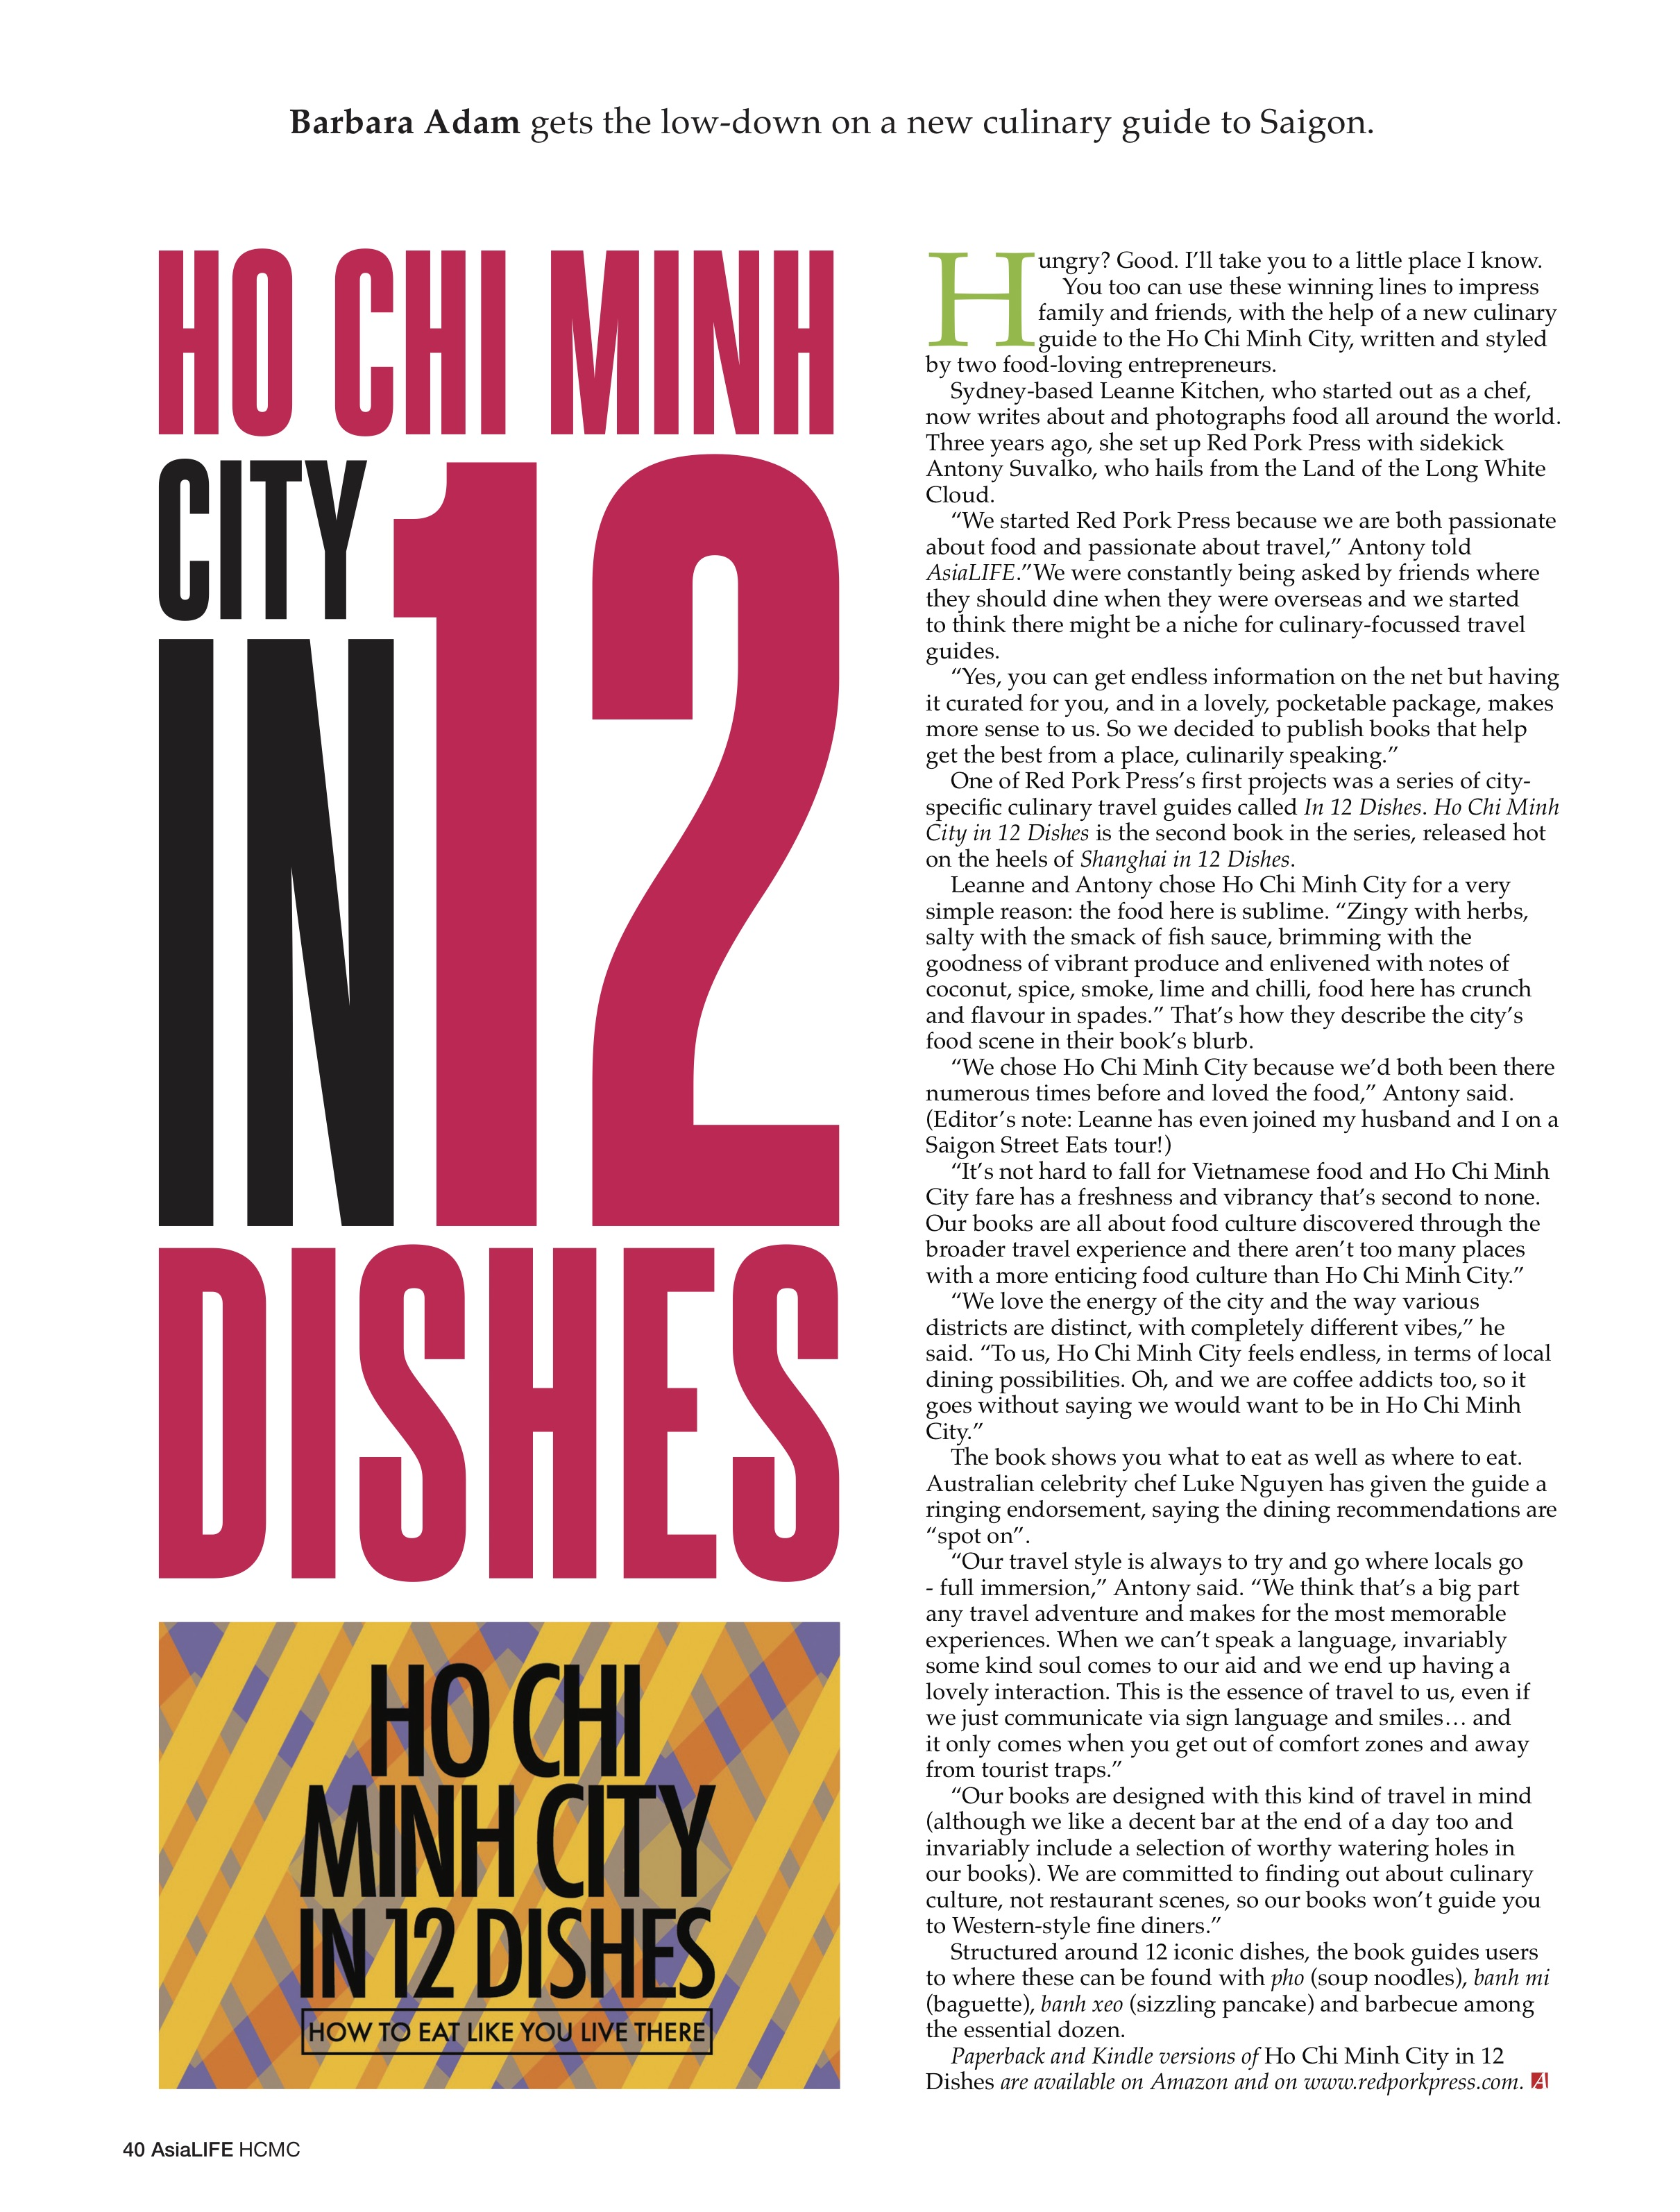 AsiaLife - Ho Chi Minh City In 12 Dishes.jpg